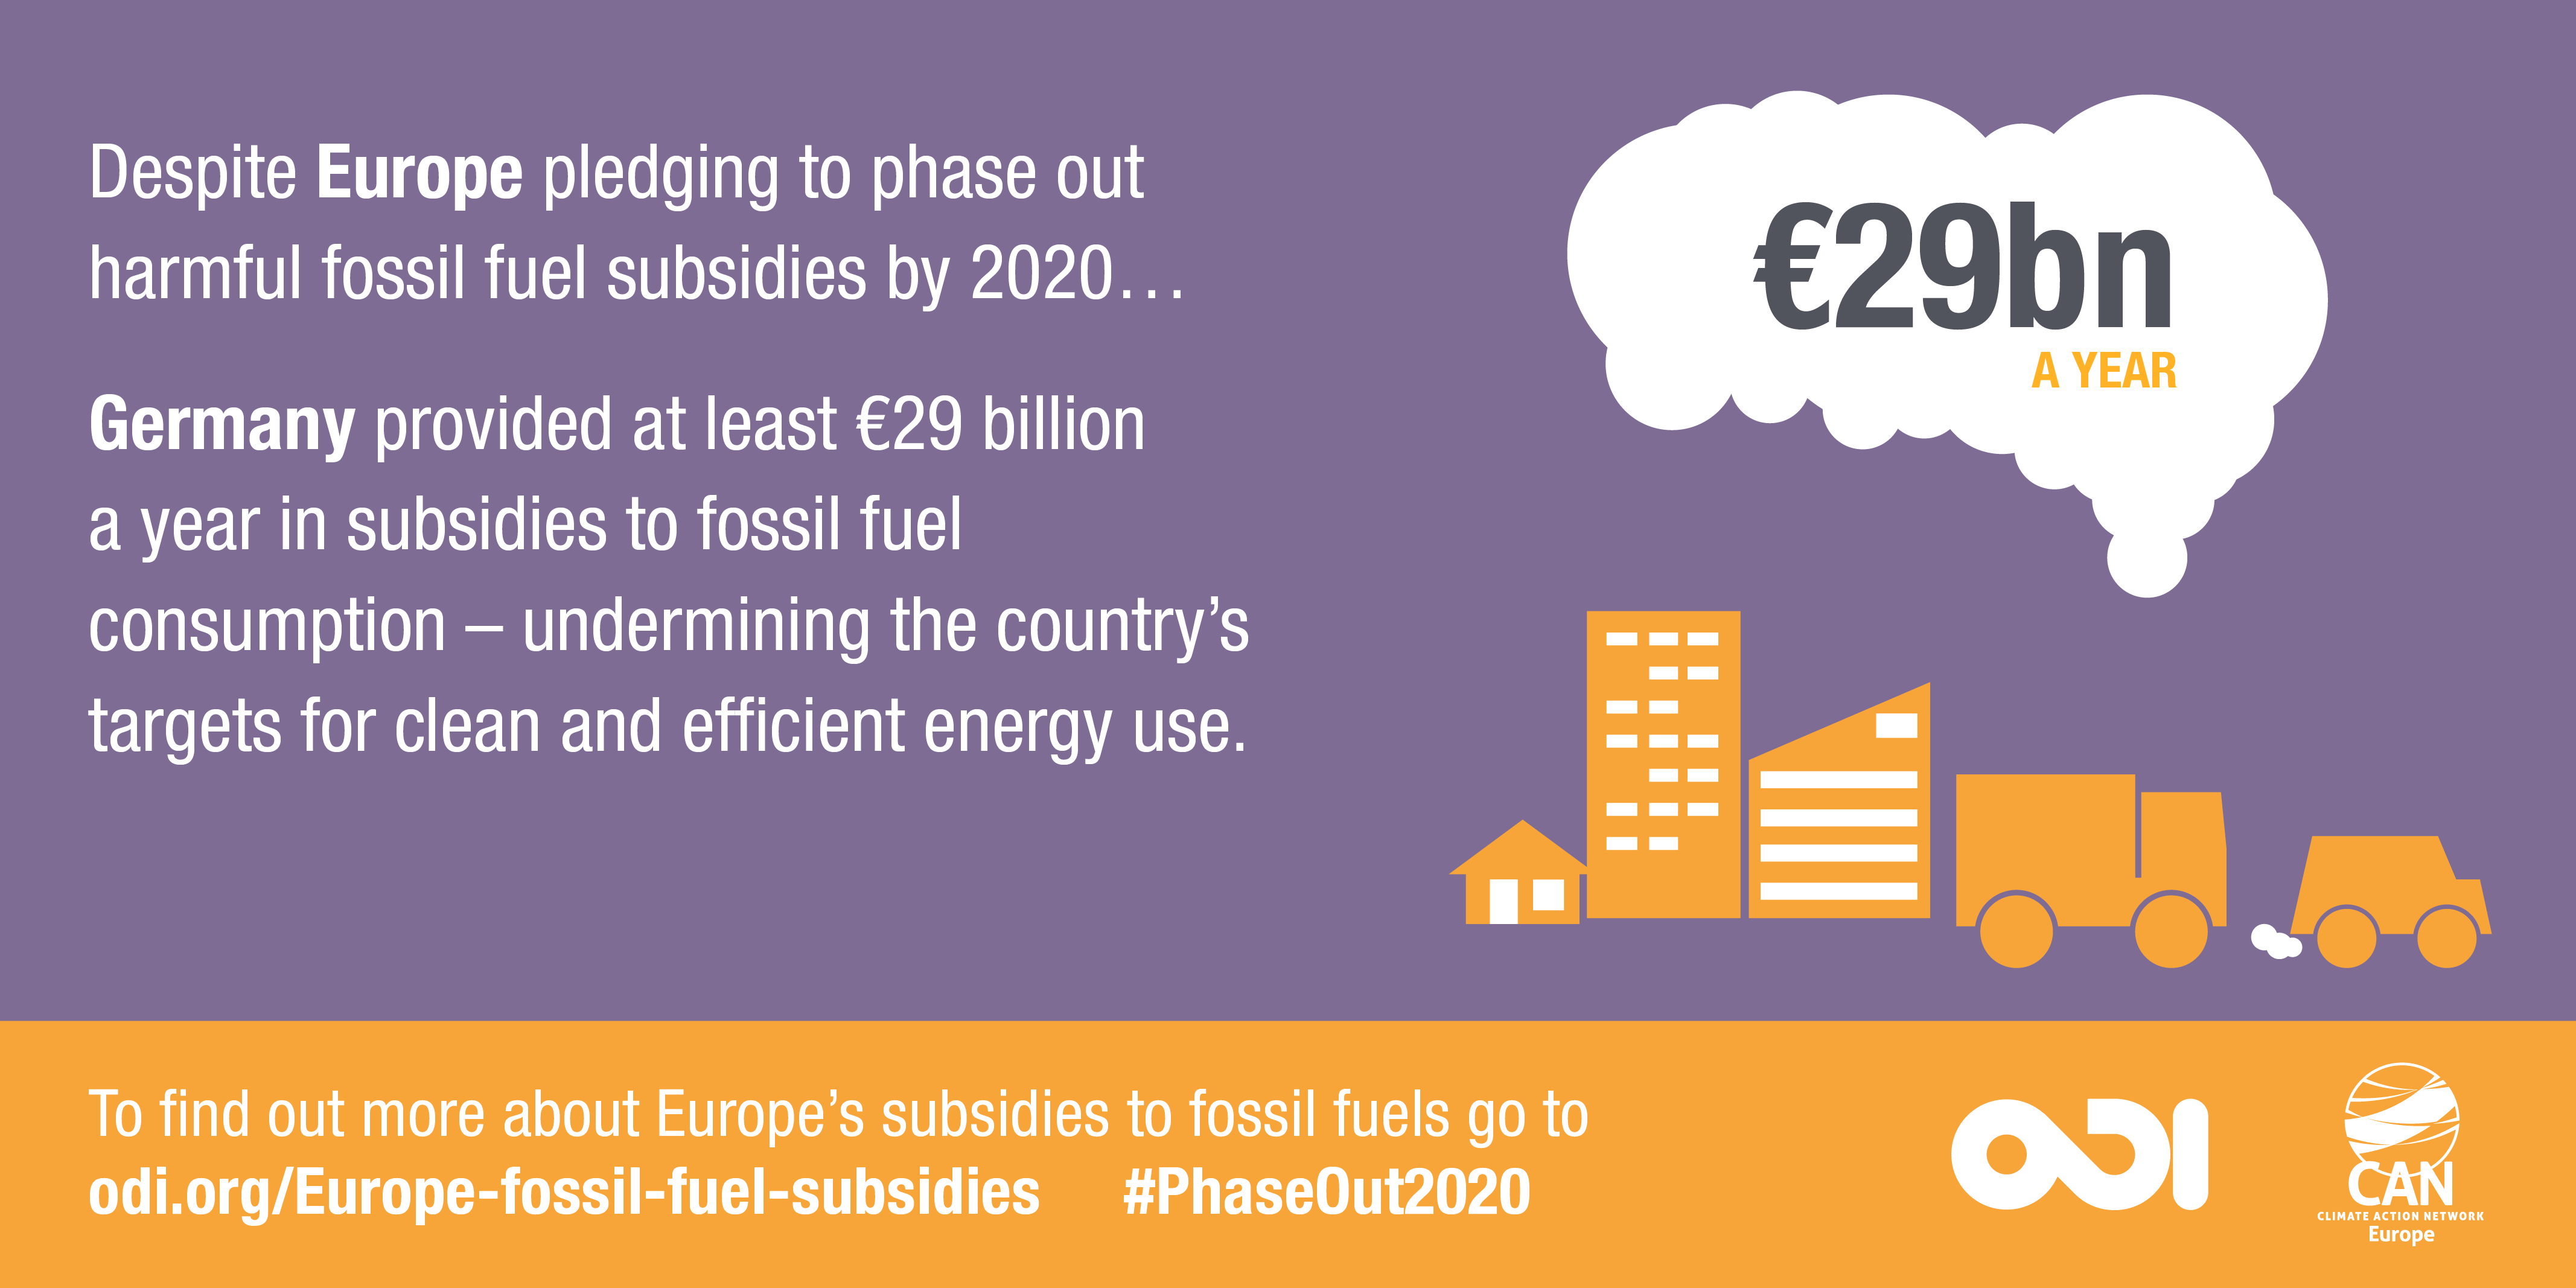 Infographic: Germany provided at least €29 billion a year in subsidies to fossil fuel consumption - undermining the country's targets for clean and efficient energy use.